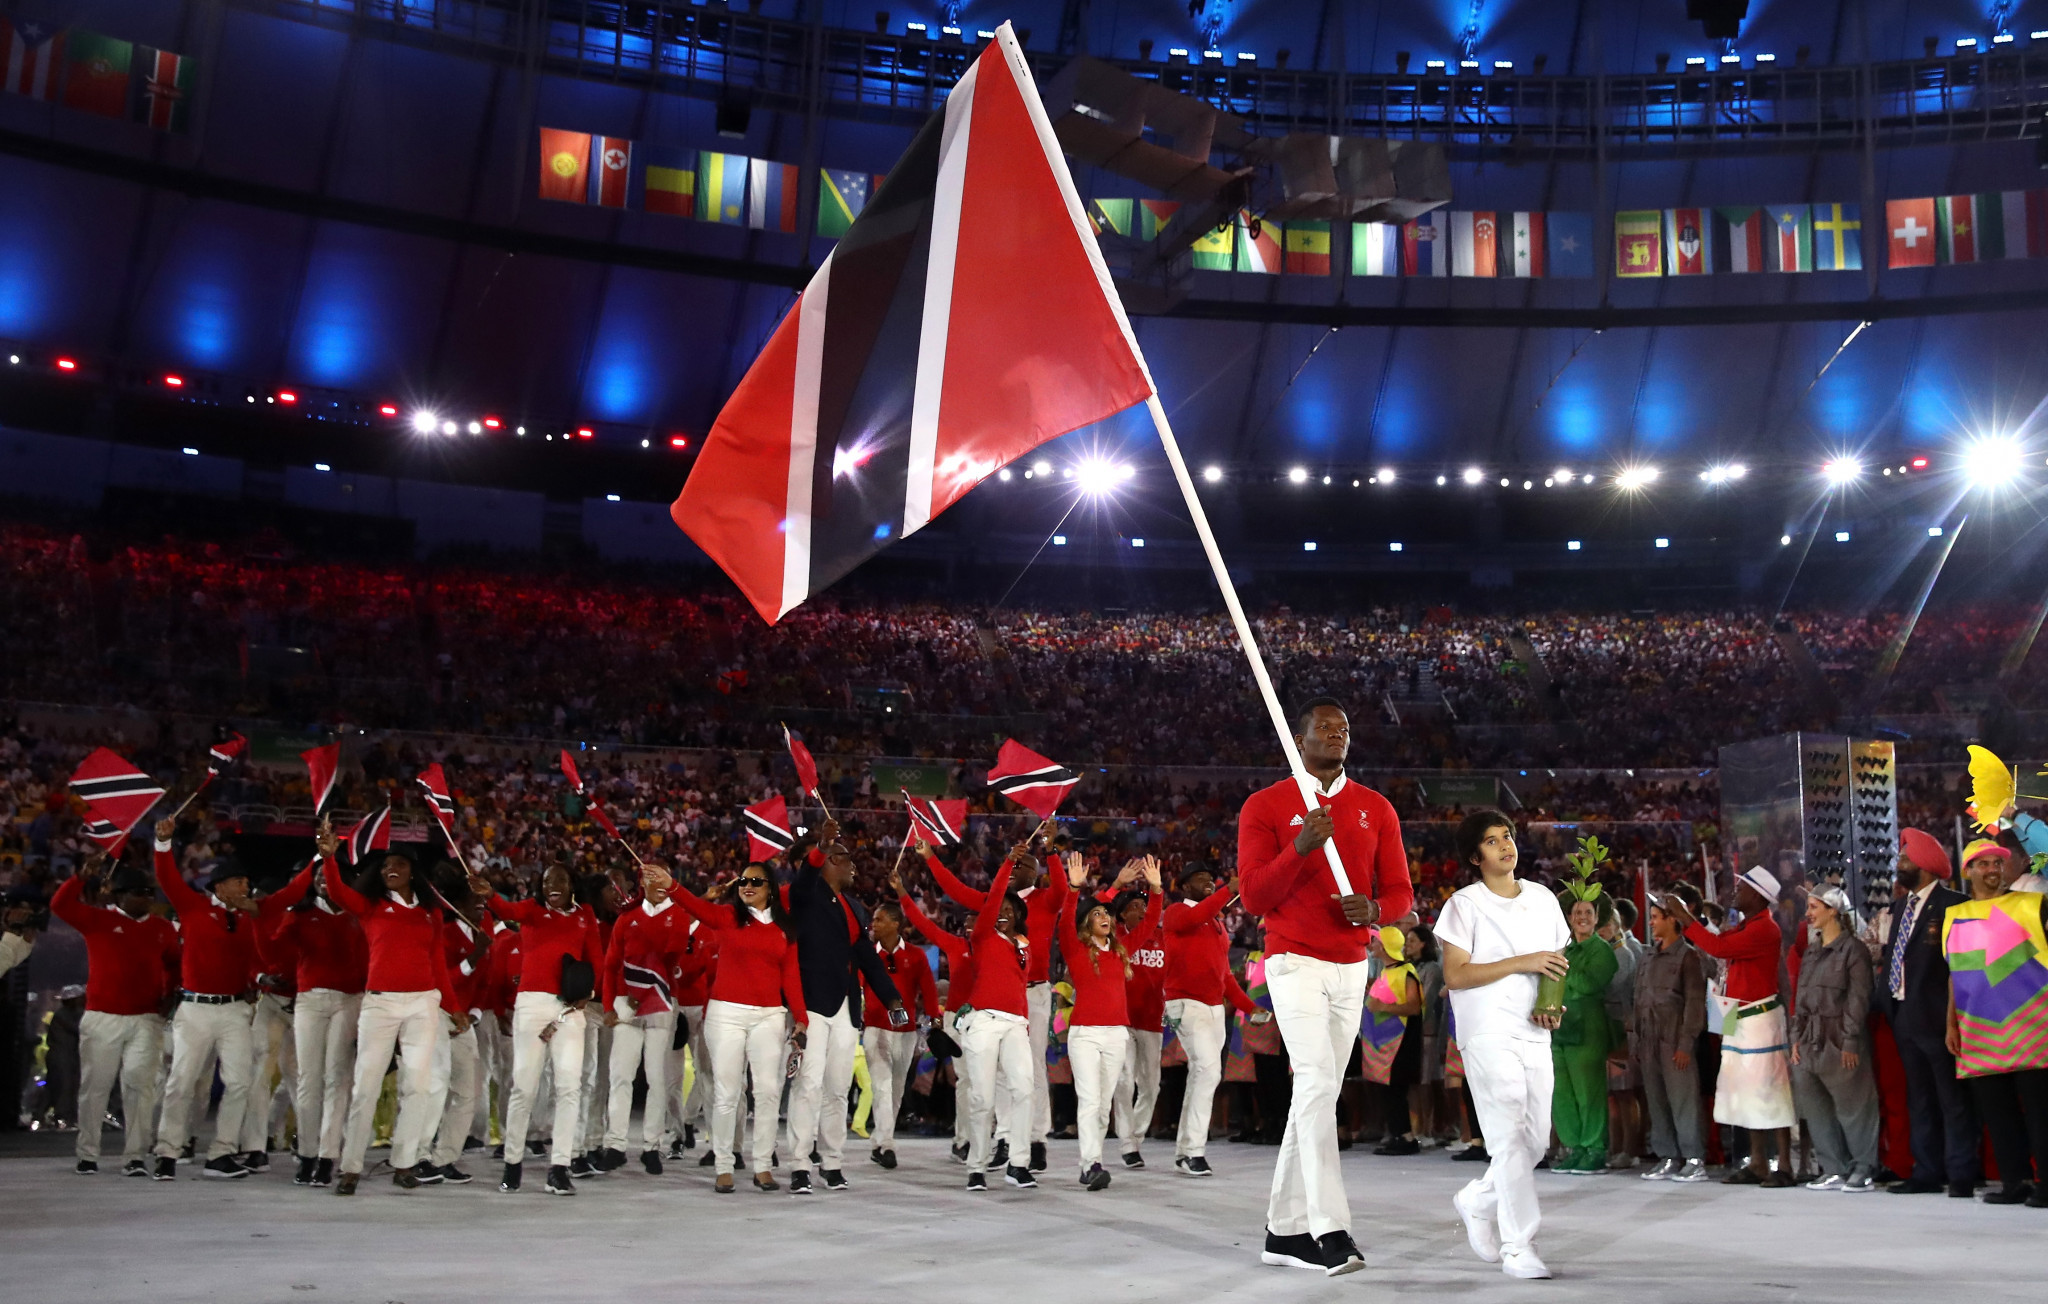 Trinidad and Tobago are also bidding for the 2021 Games ©Getty Images